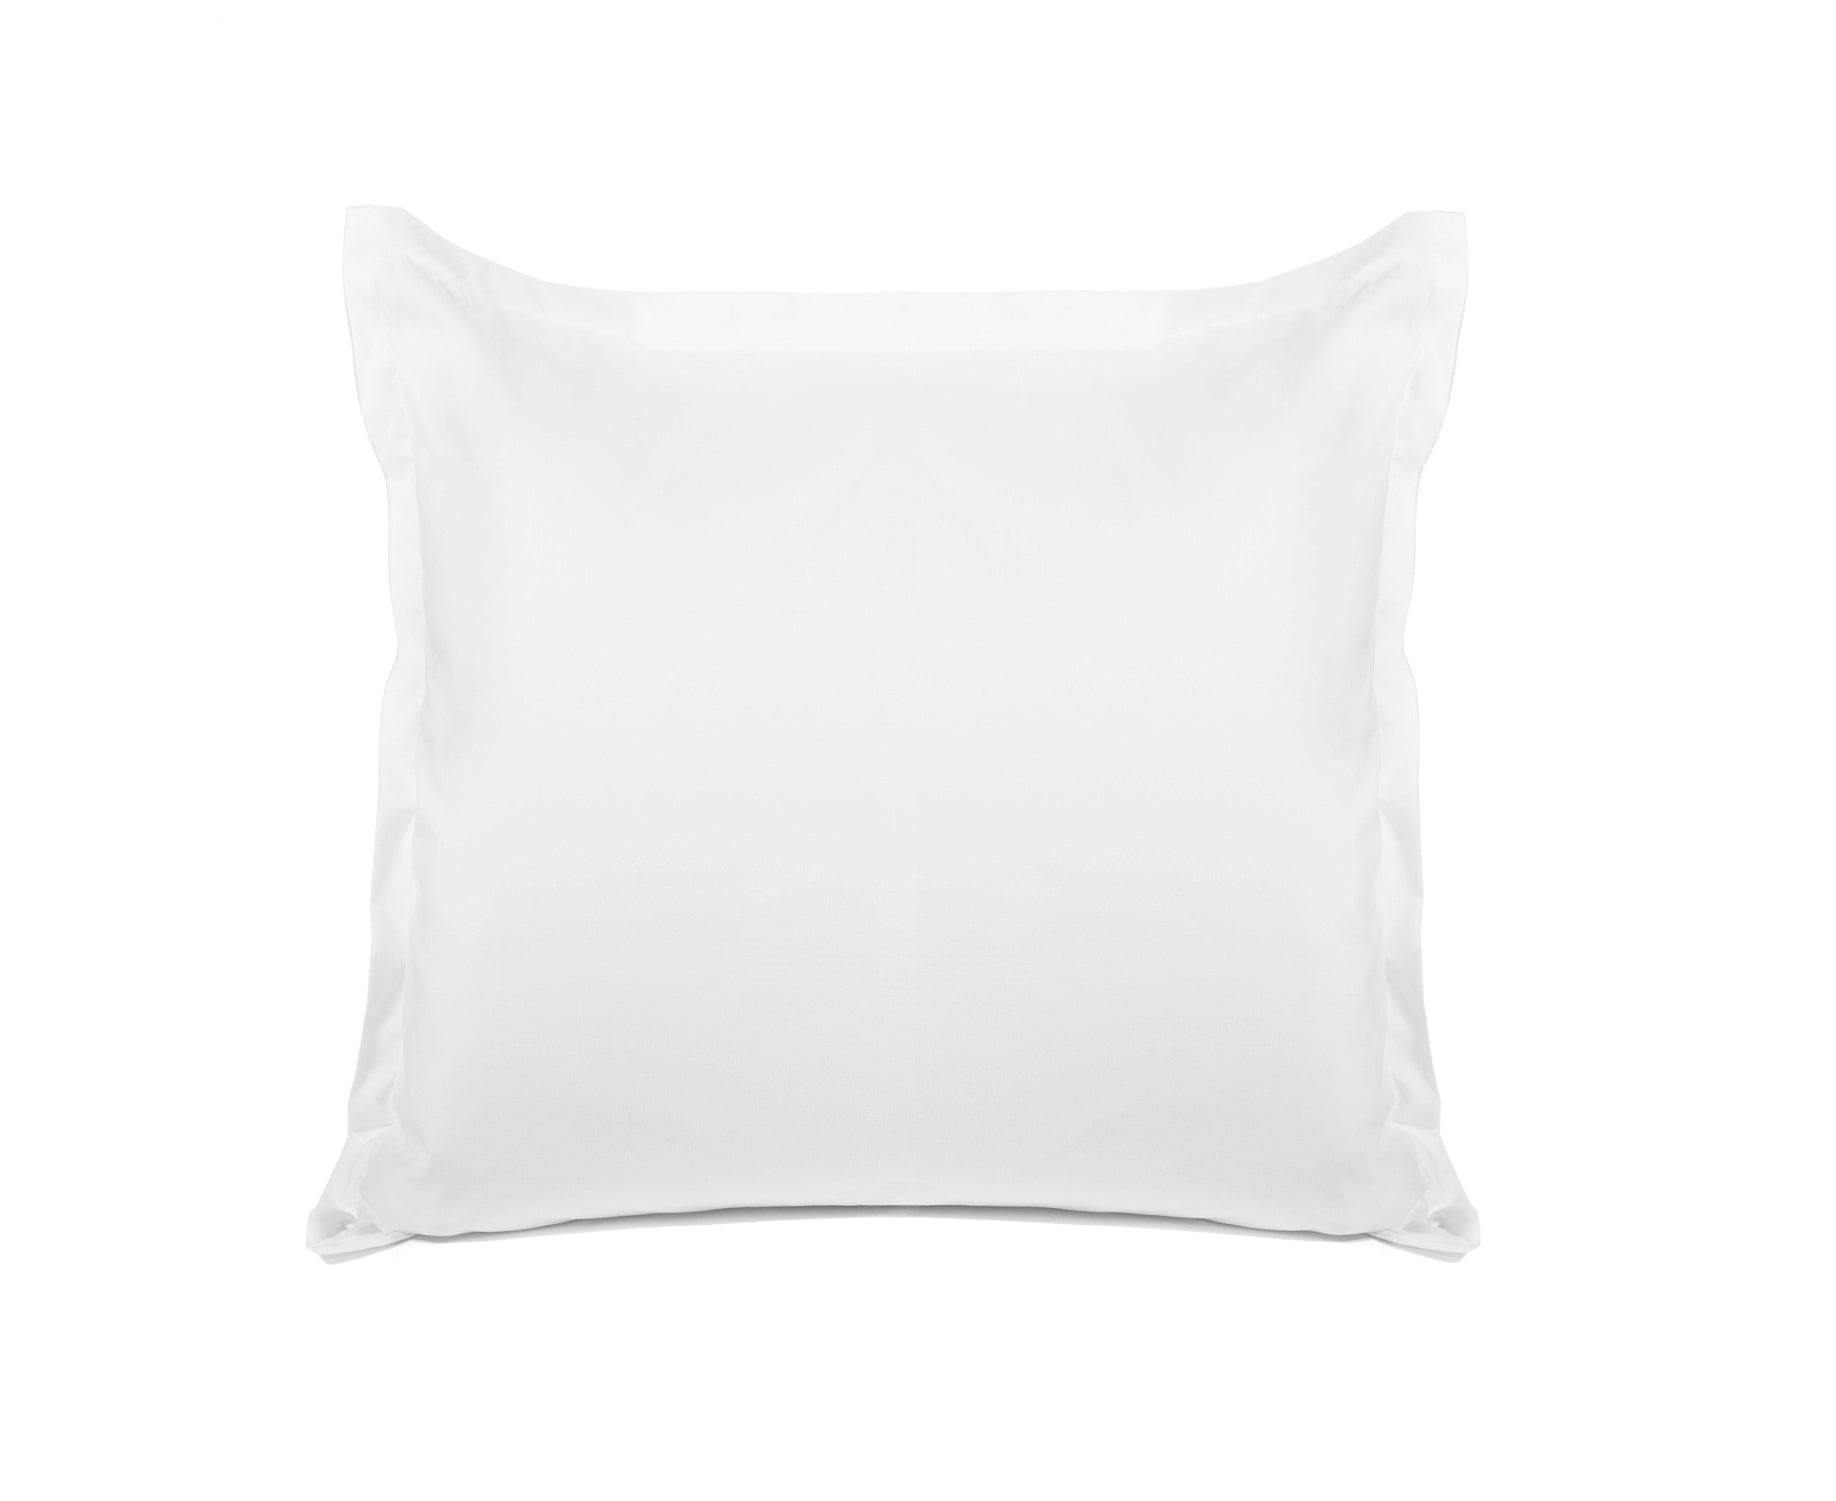 Personalized Monogram Euro Sham, Personalized Pillows